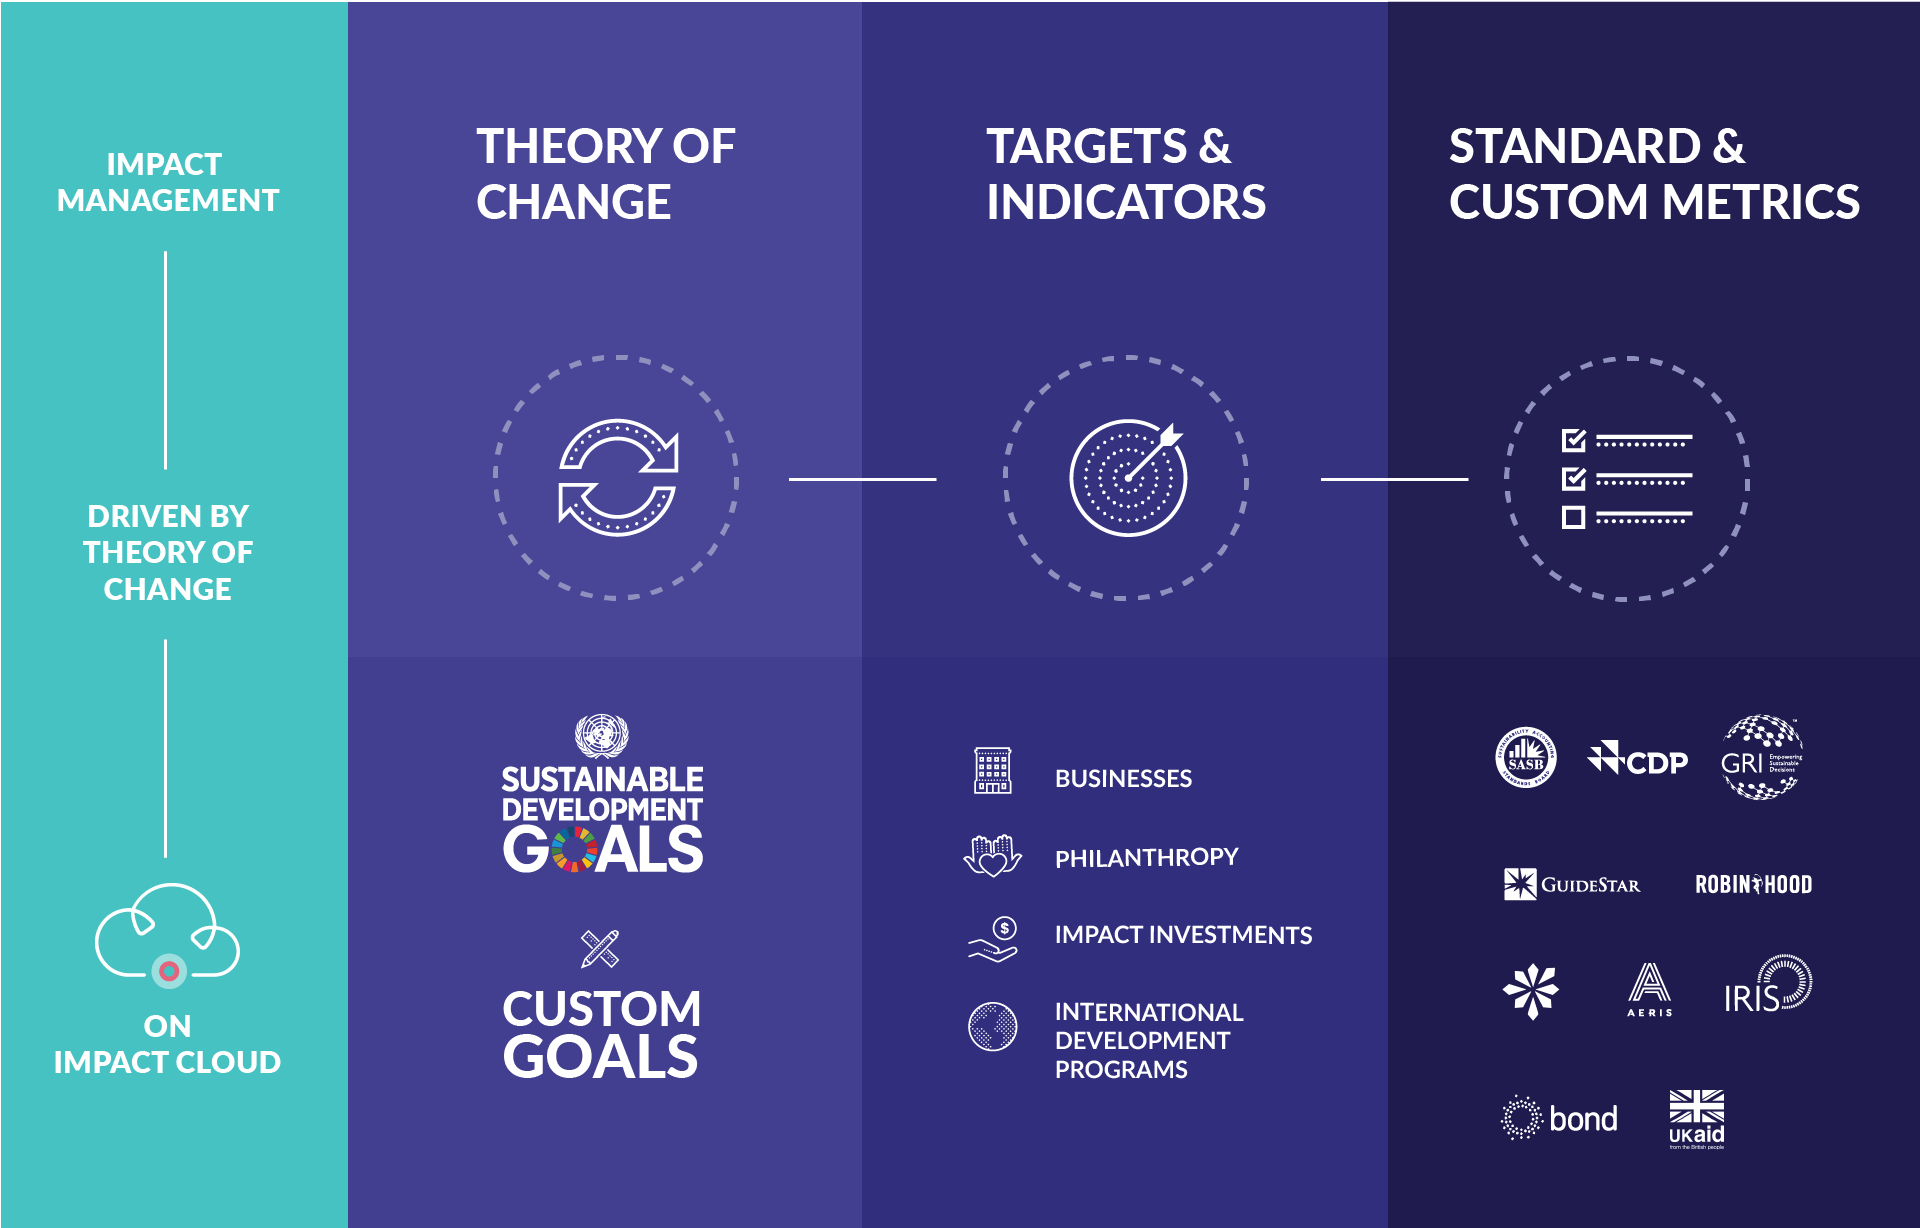 Theory of Change with Sustainable Development Goals